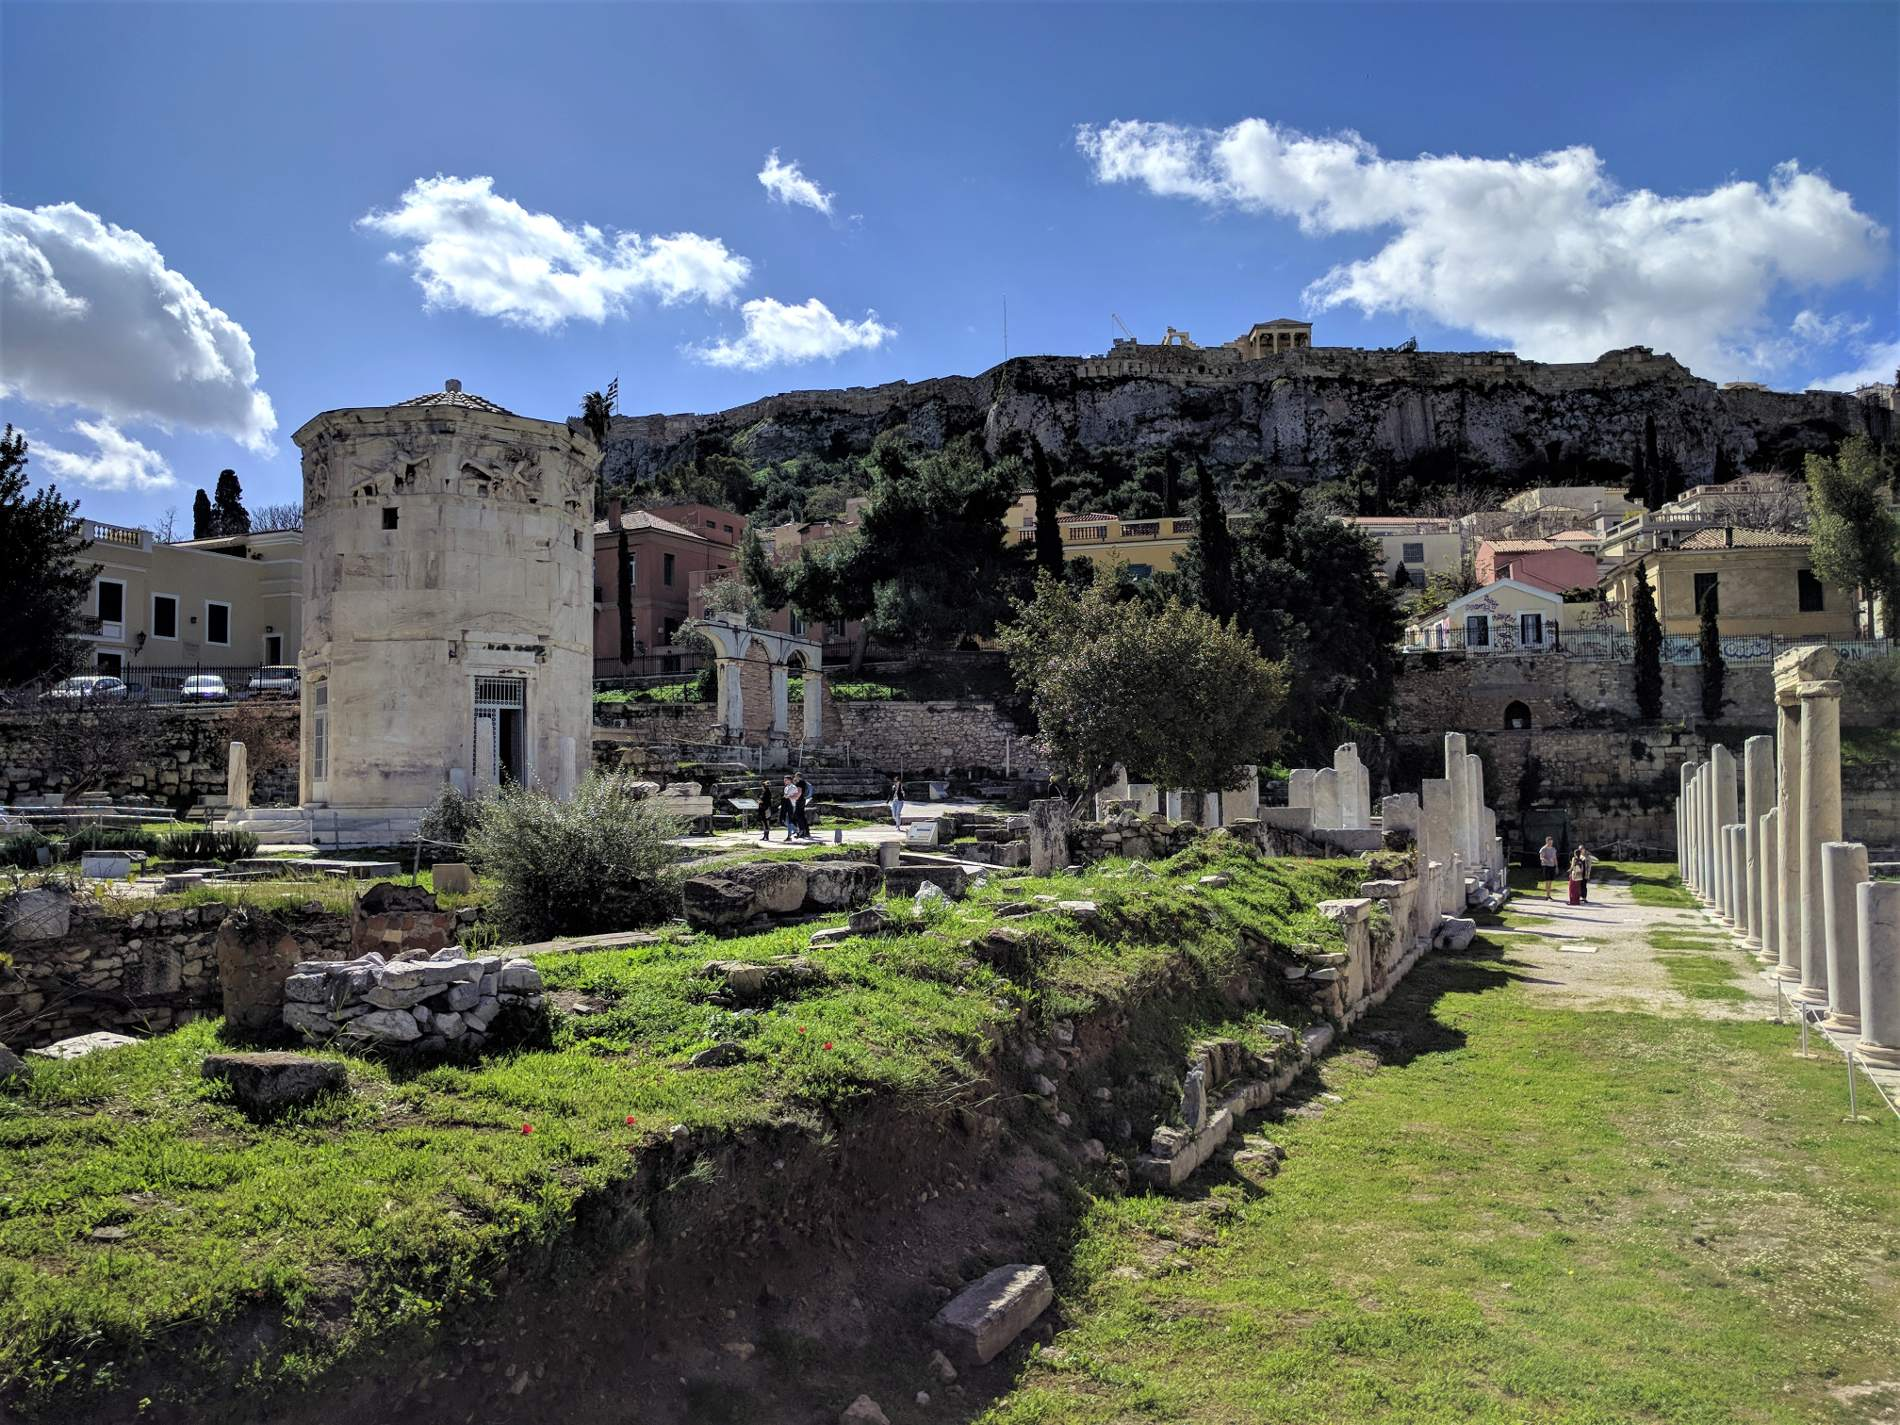 The magnificent Tower of Winds, which is located on the eastern part inside the Roman Agora, is one of the top things to see in Monastiraki area.